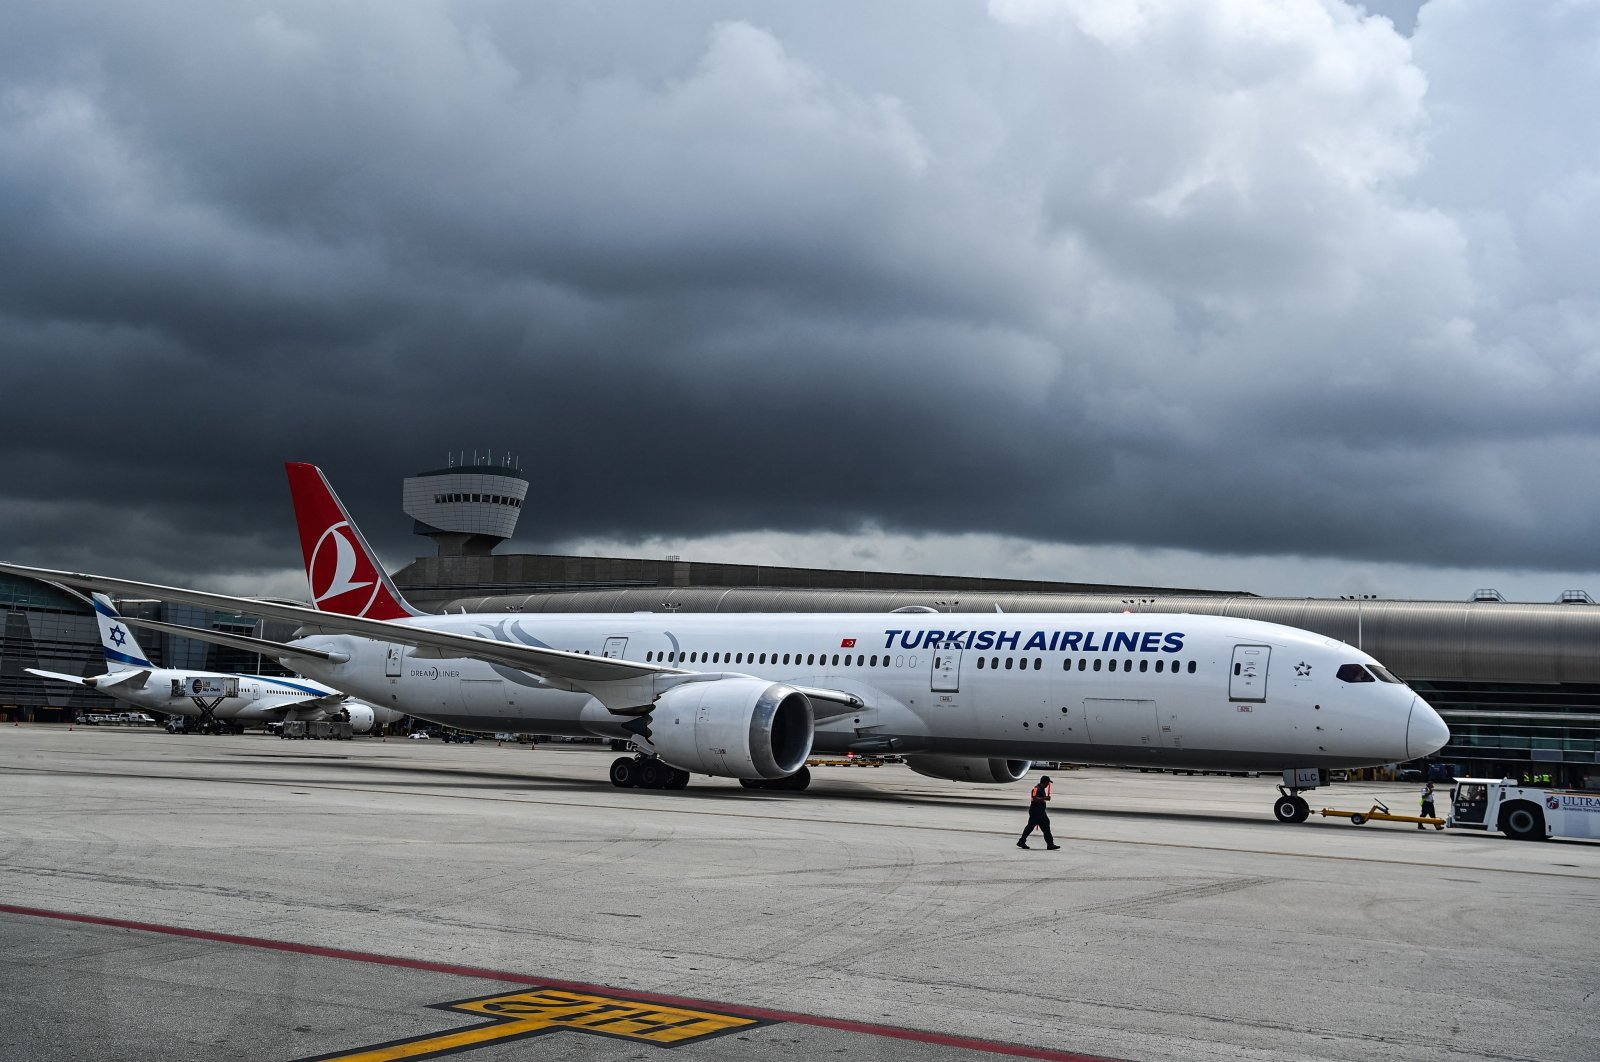 A Turkish Airlines plane prepares to take off from Miami International Airport, Miami, U.S., June 16, 2021. (AFP Photo)